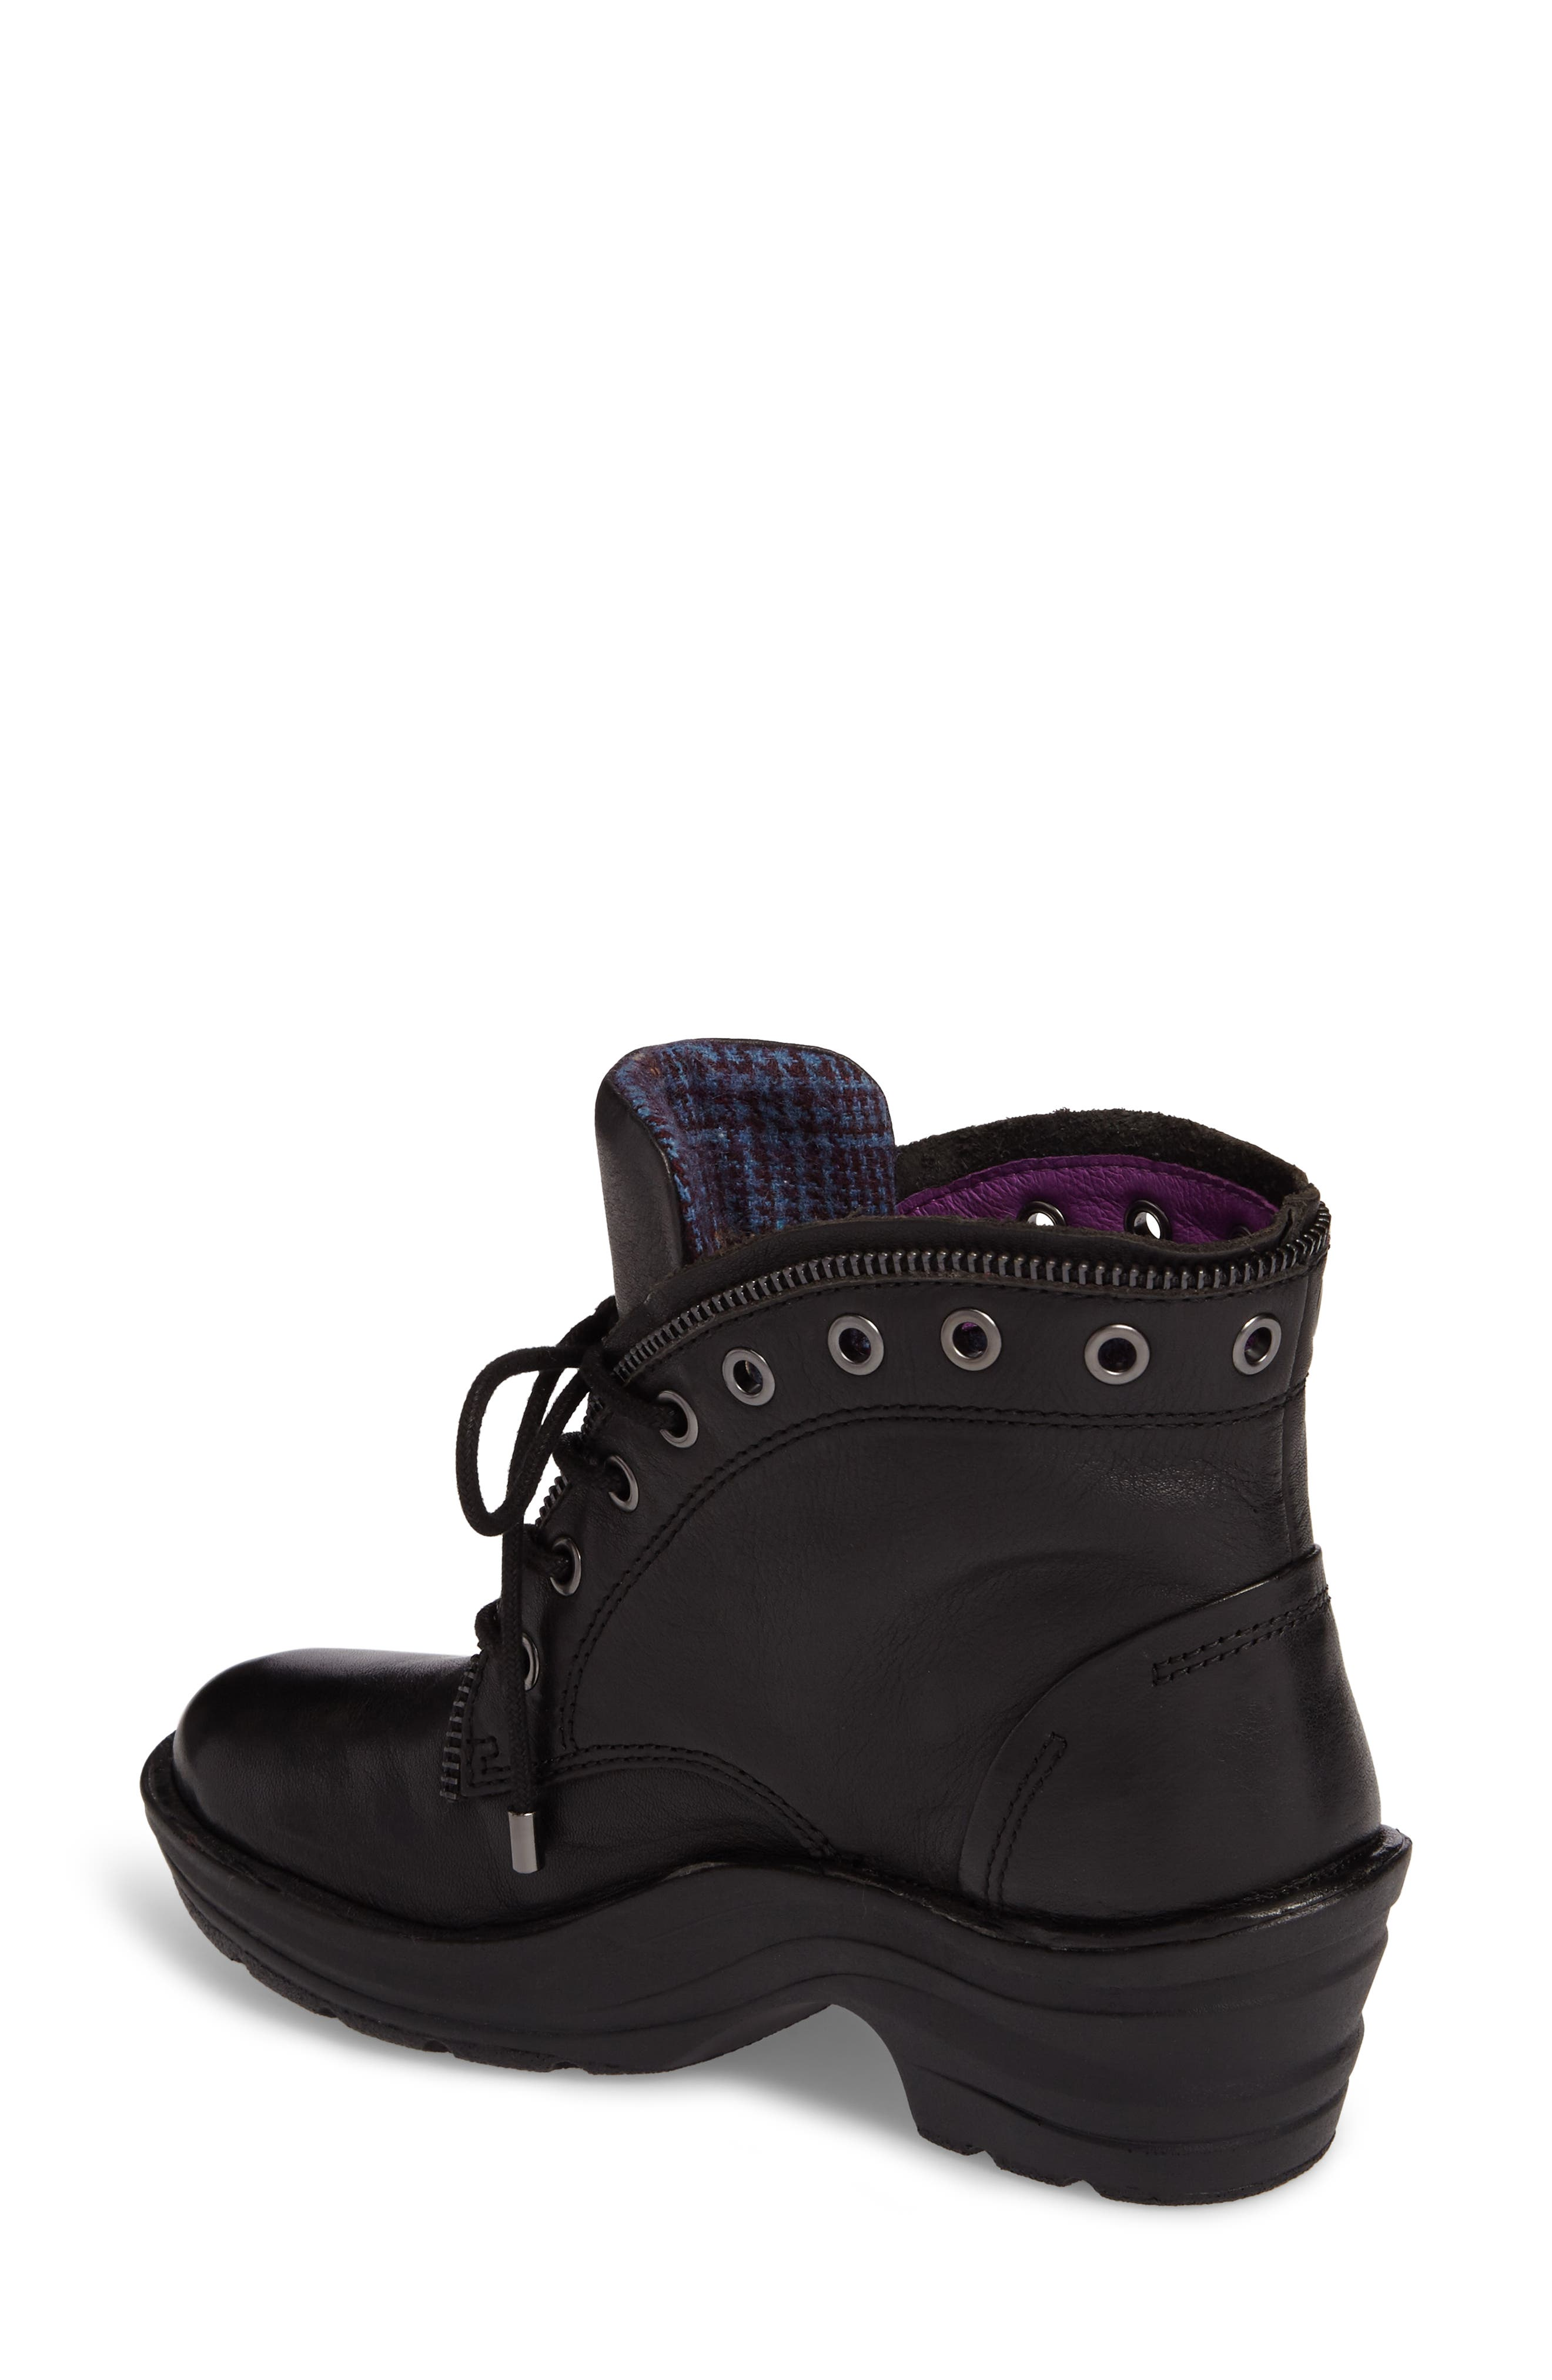 Rangely Boot,                             Alternate thumbnail 2, color,                             001